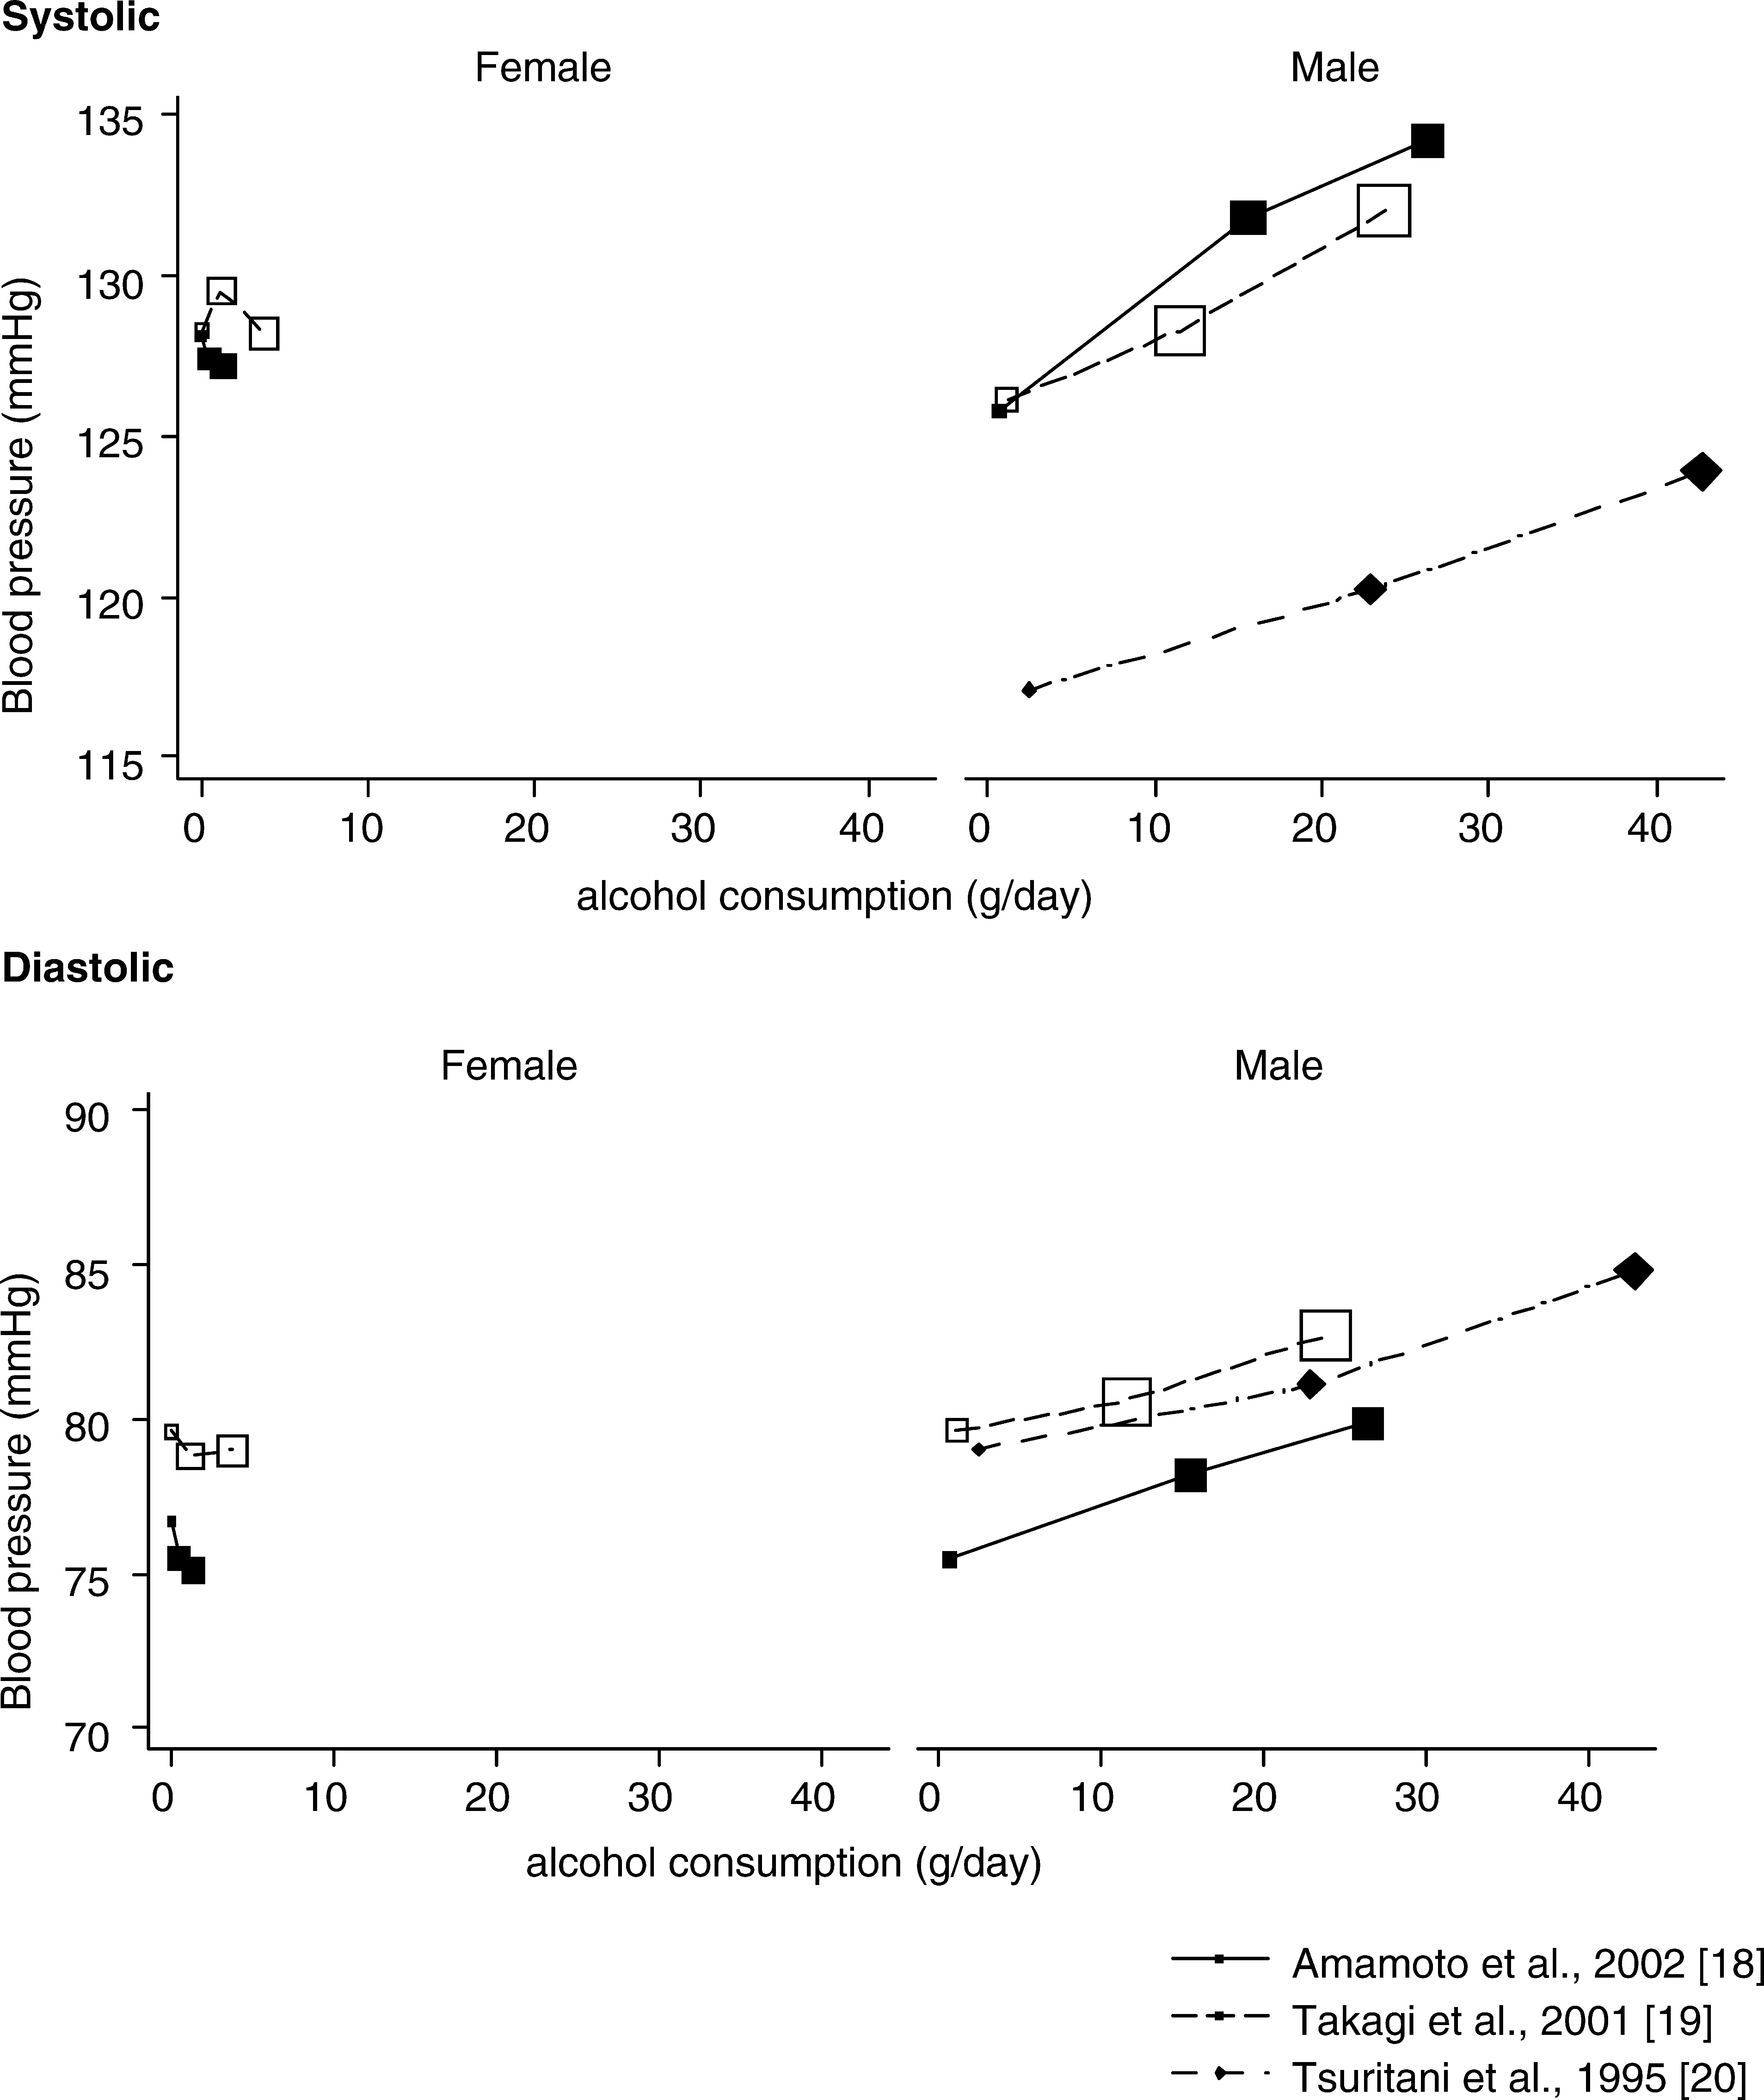 Mean Blood Pressure in Each Genotype Plotted against Mean Alcohol Consumption in Each Genotype in the Three Studies That Gave Data for Both Relationships